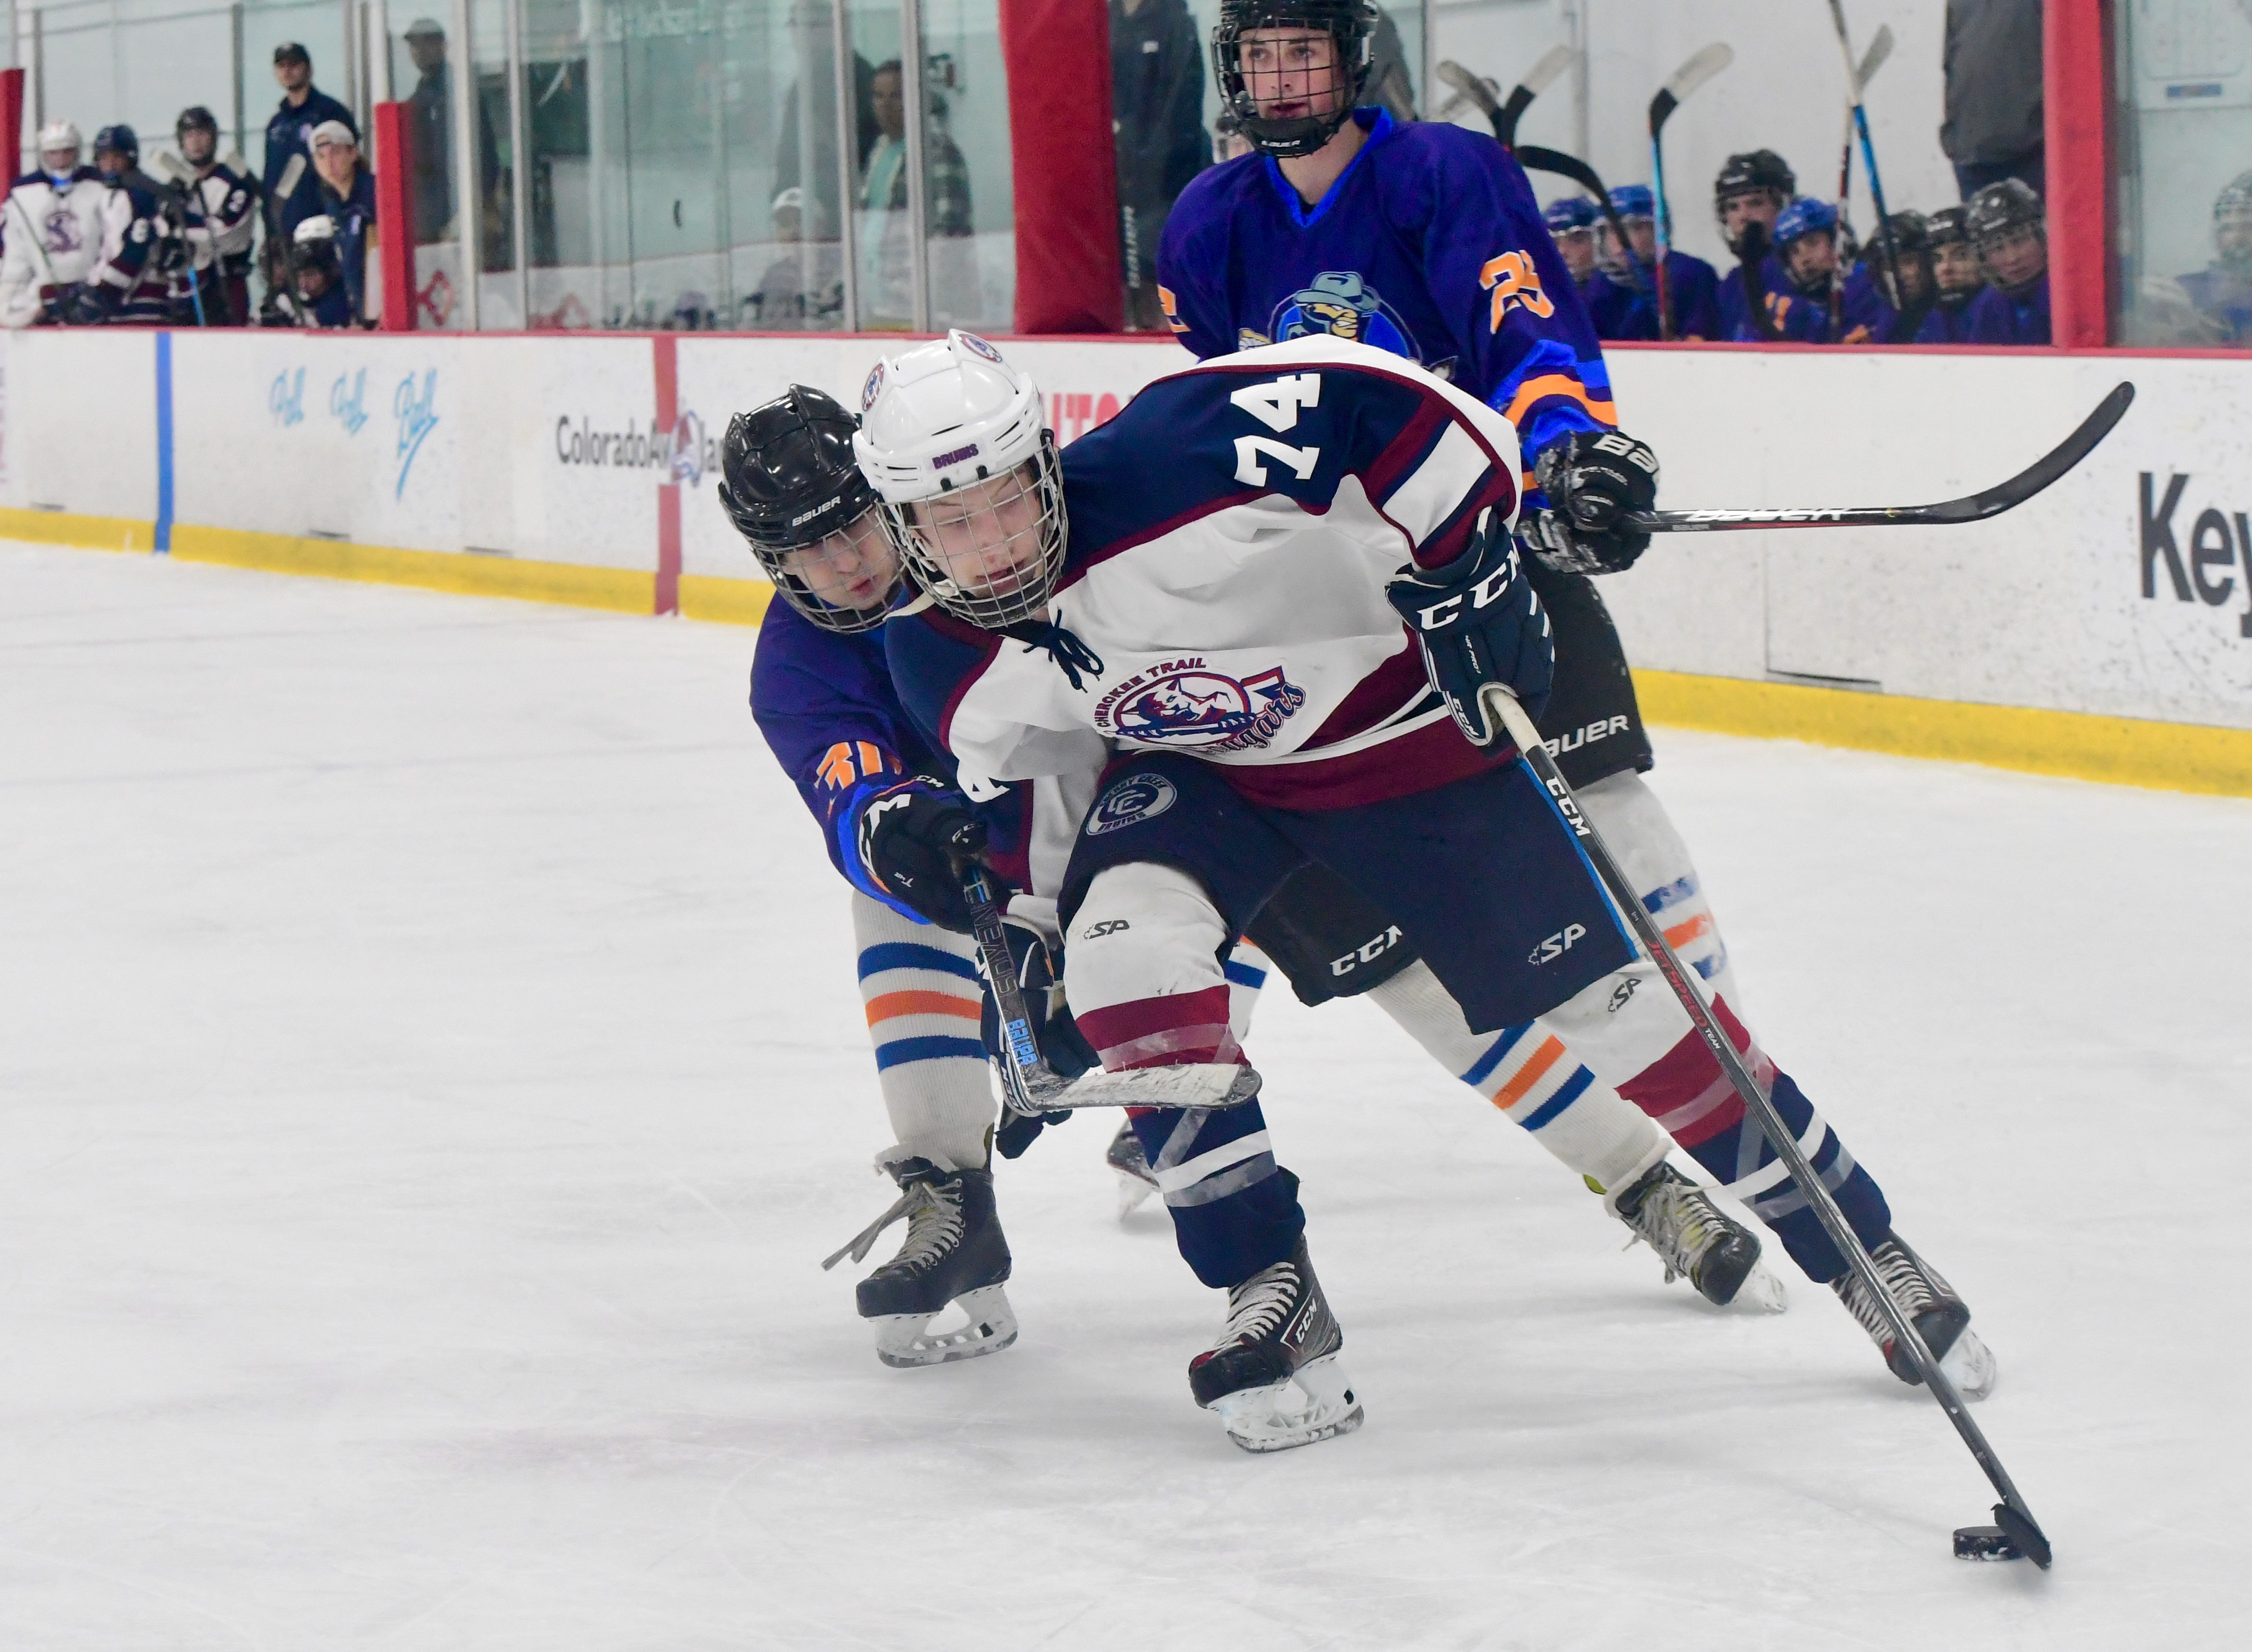 Cherokee Trail II's Luke Brennan maneuvers around two WLTV defenders in the Cougars' 3-2 victory over the Wranglers at Family Sports Center on May 29. Cherokee Trail handed WLTV its first loss of the season. Photo by Steven Robinson, SportsEngine